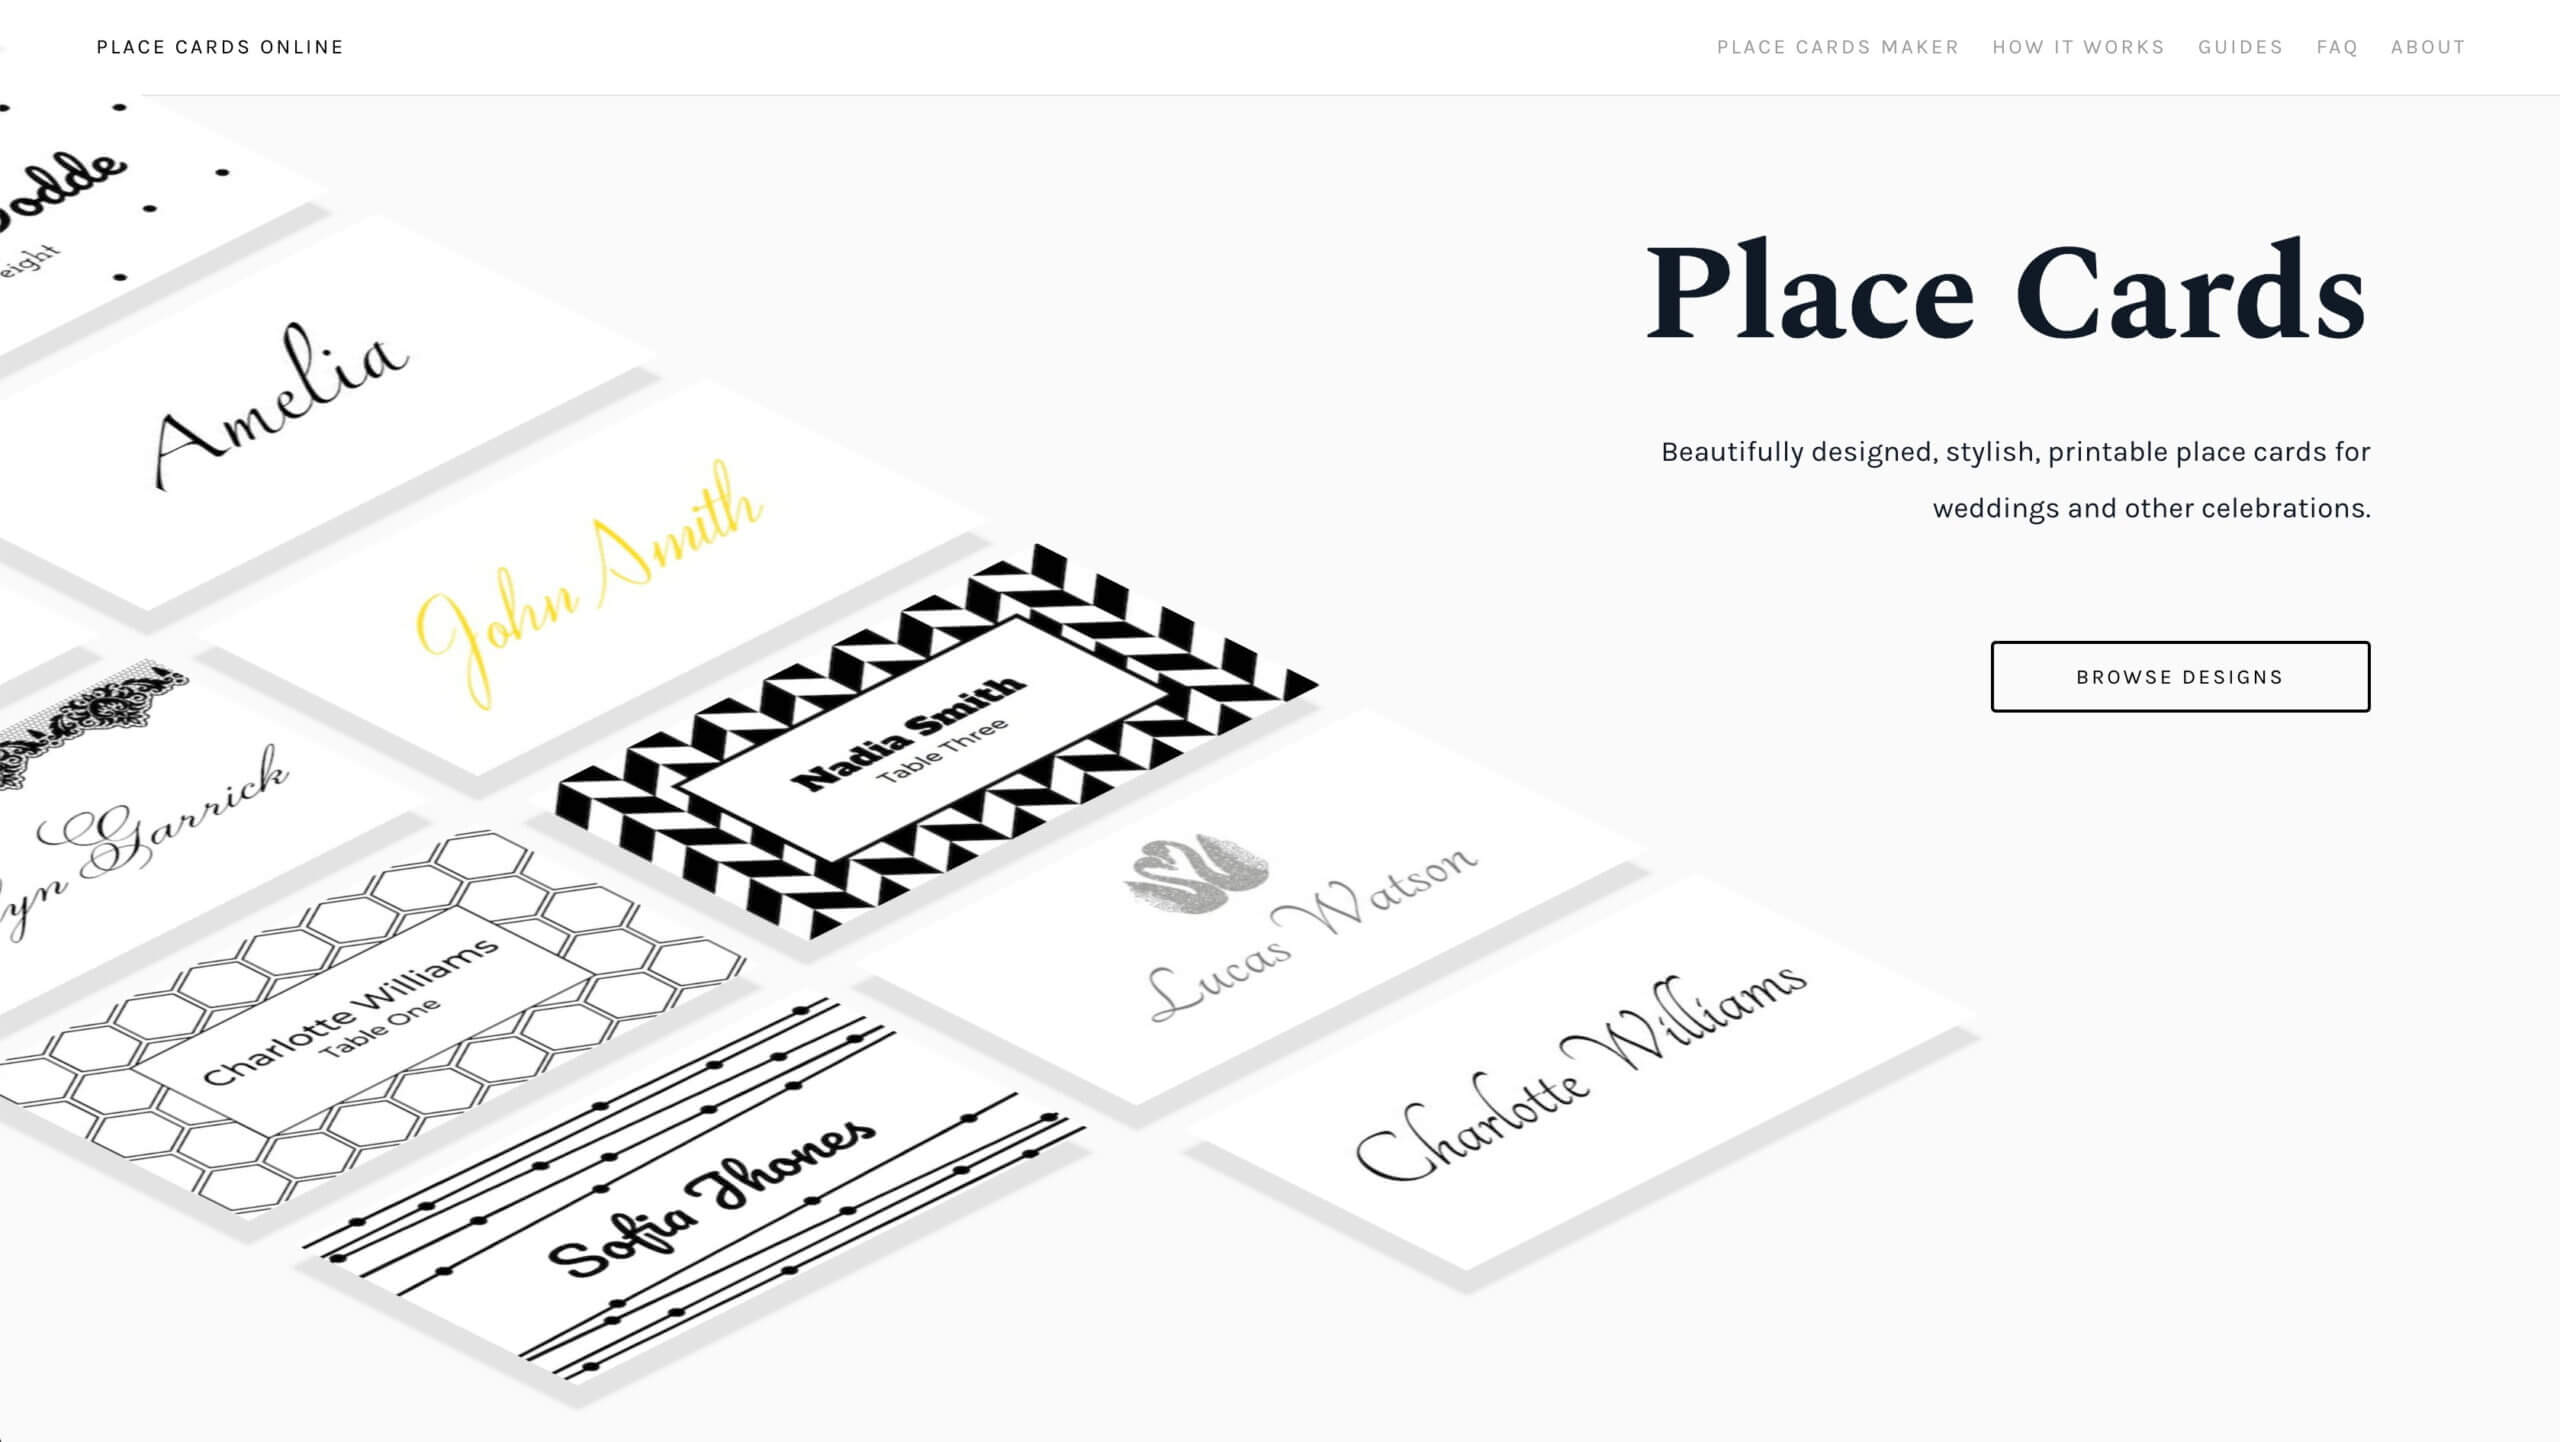 Place Cards Online - Place Cards Maker. Beautifully Designed Throughout Celebrate It Templates Place Cards